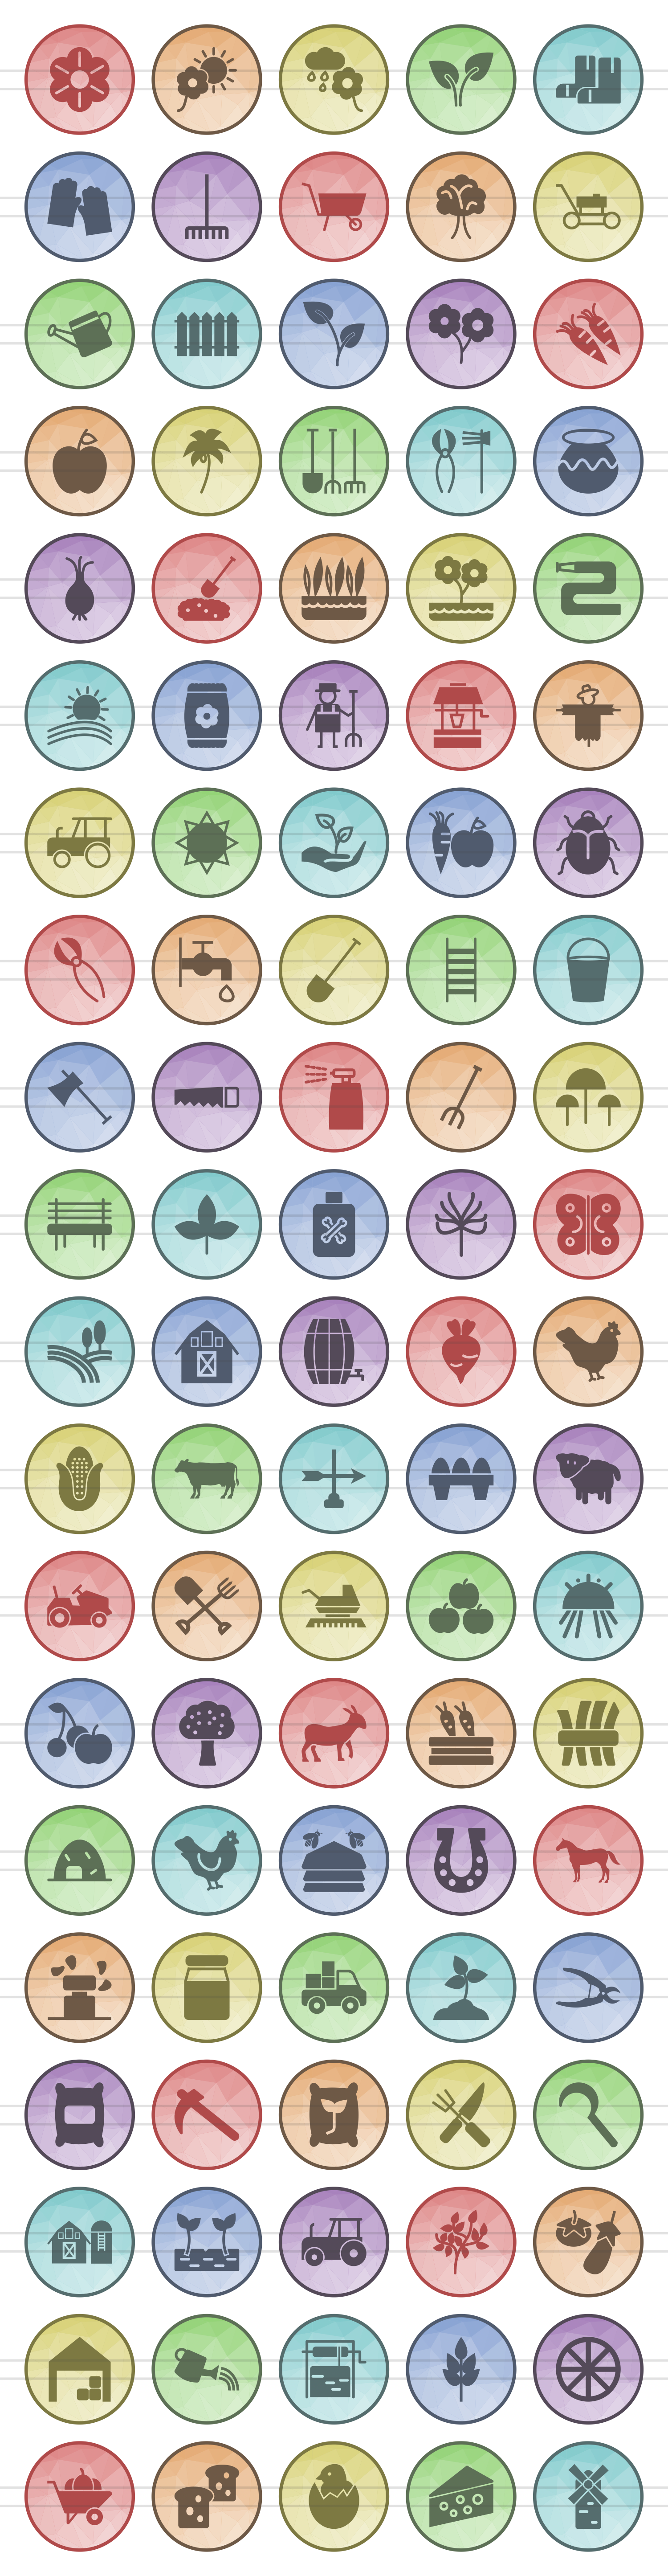 100 Farm & Gardening Filled Low Poly Icons example image 2